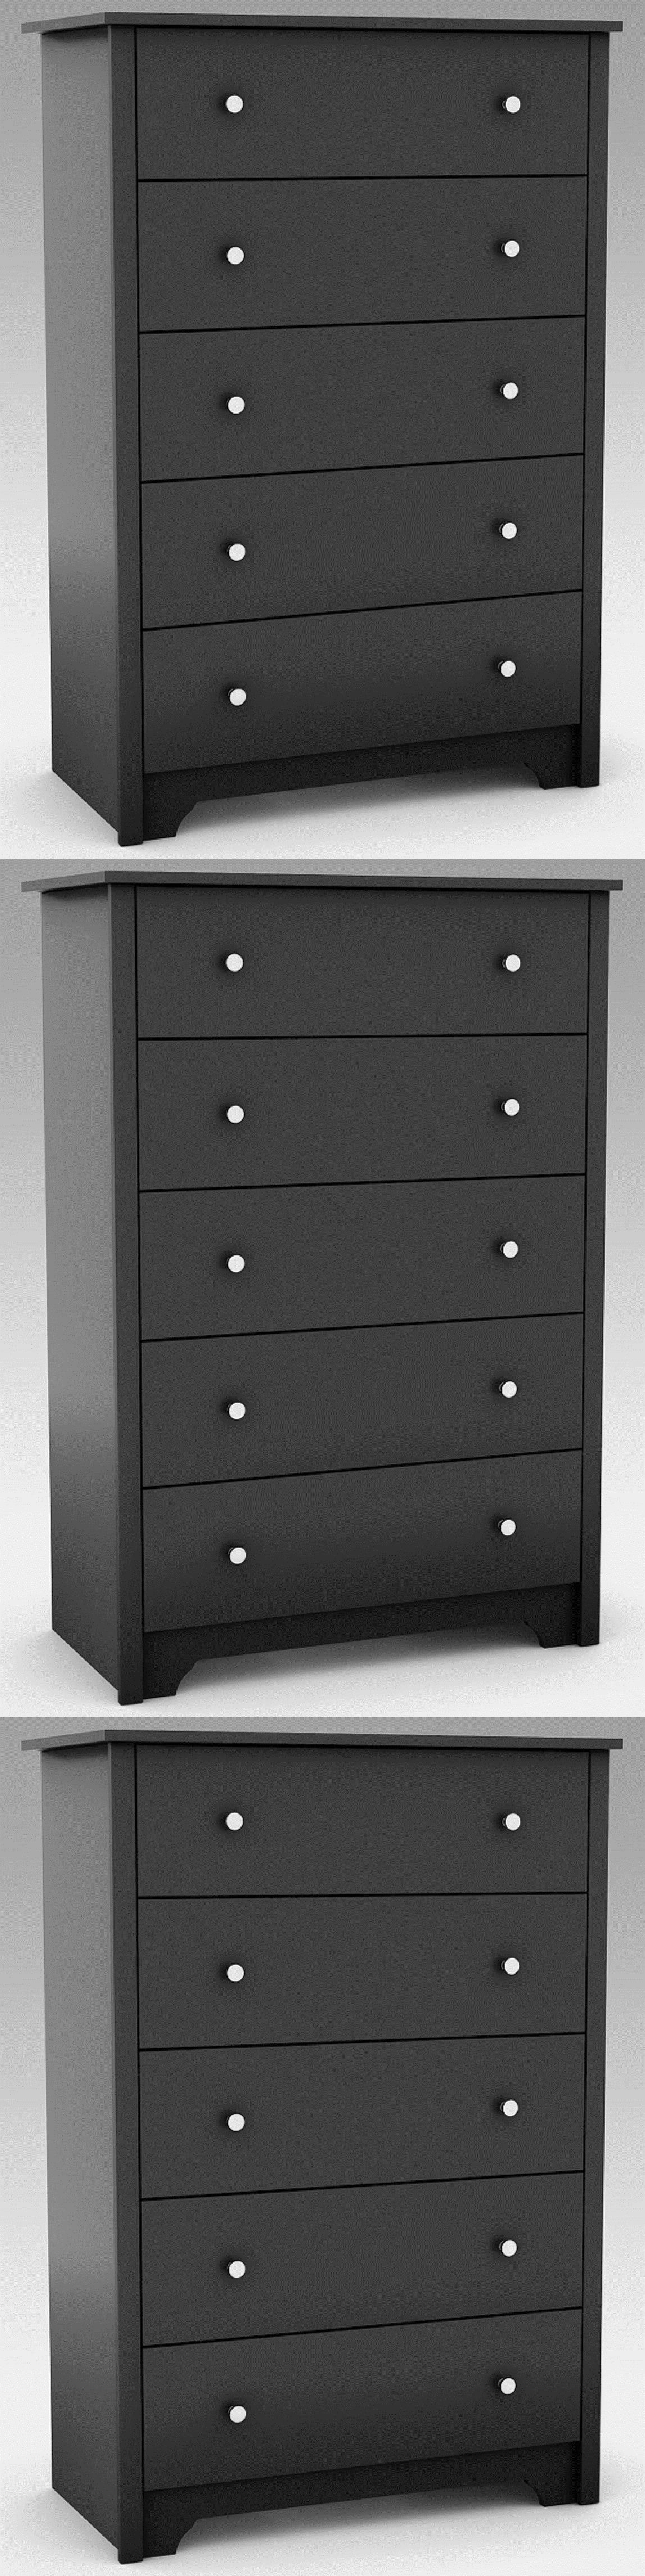 Dressers And Chests Of Drawers 114397 Chest Of Drawers Black